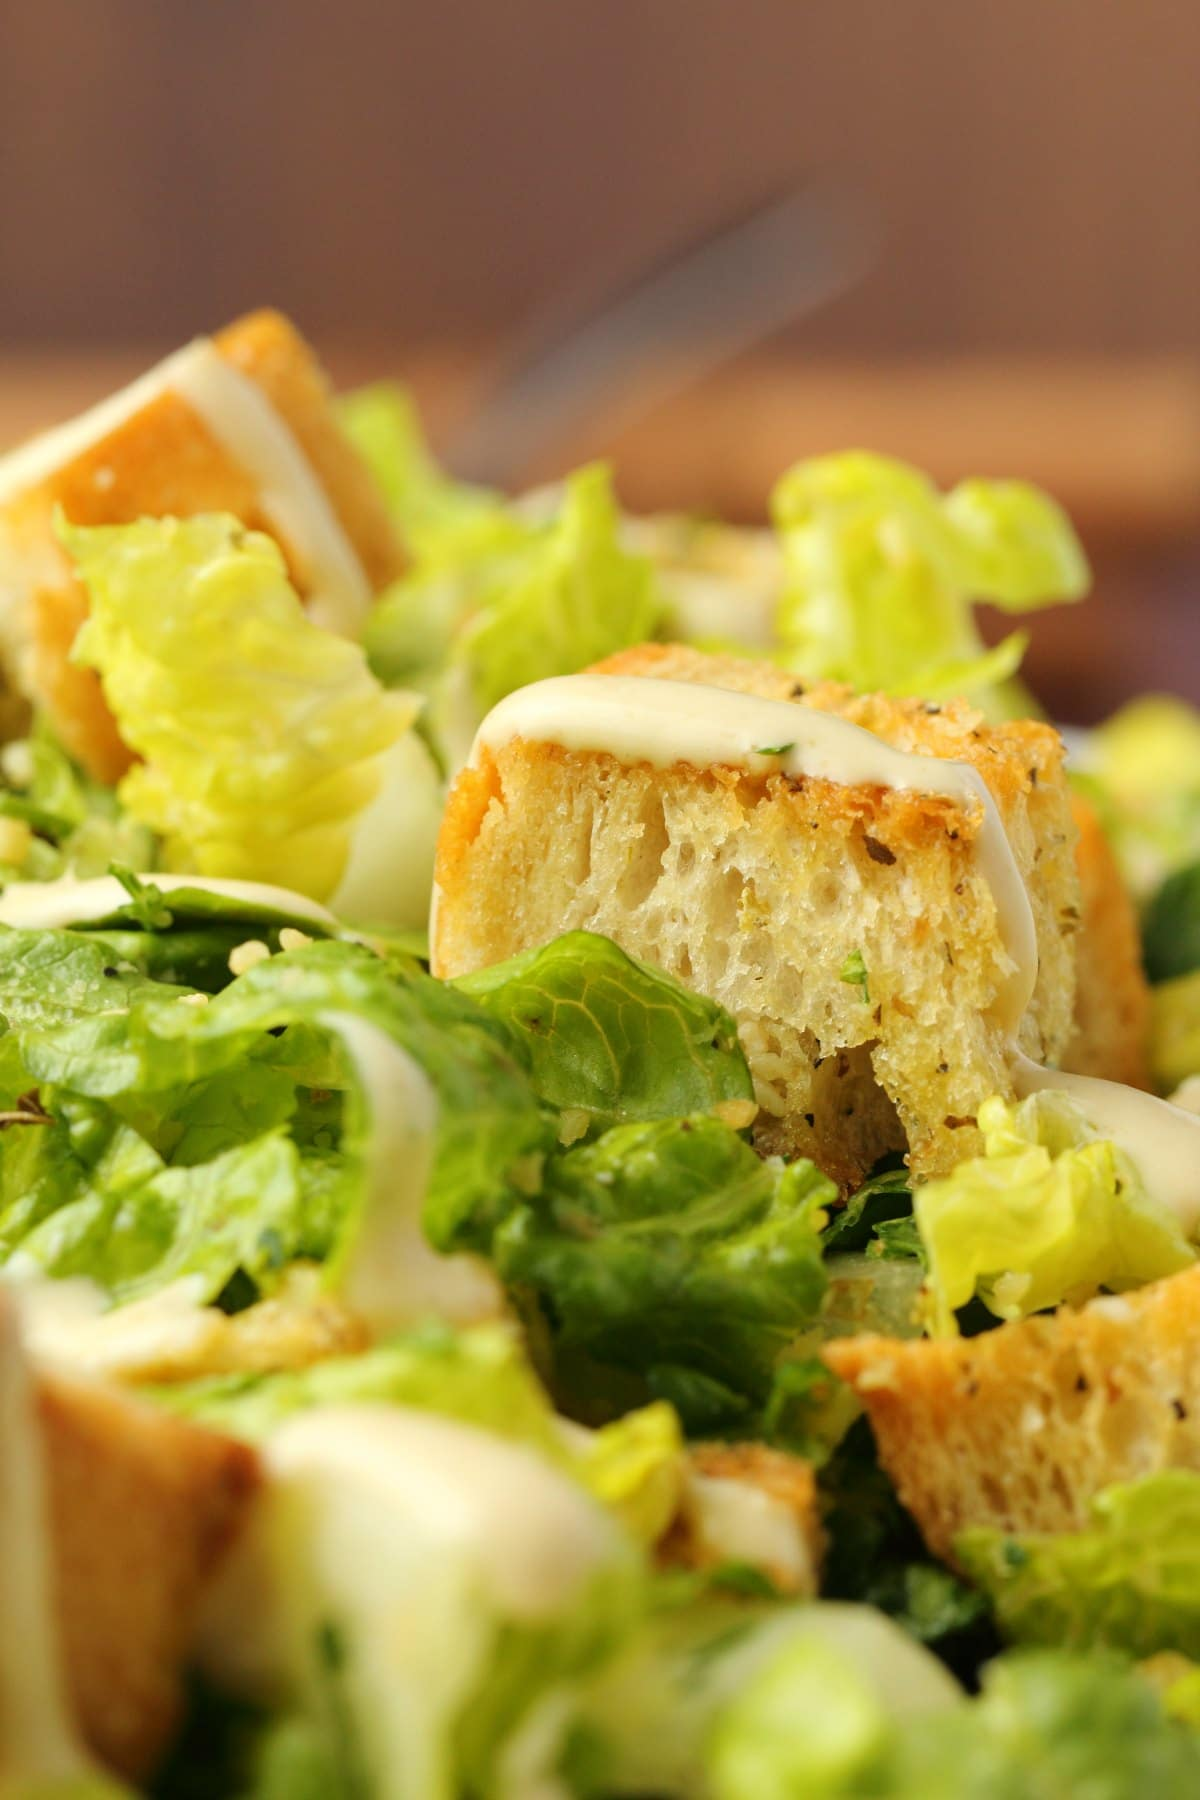 Vegan caesar salad topped with caesar dressing.